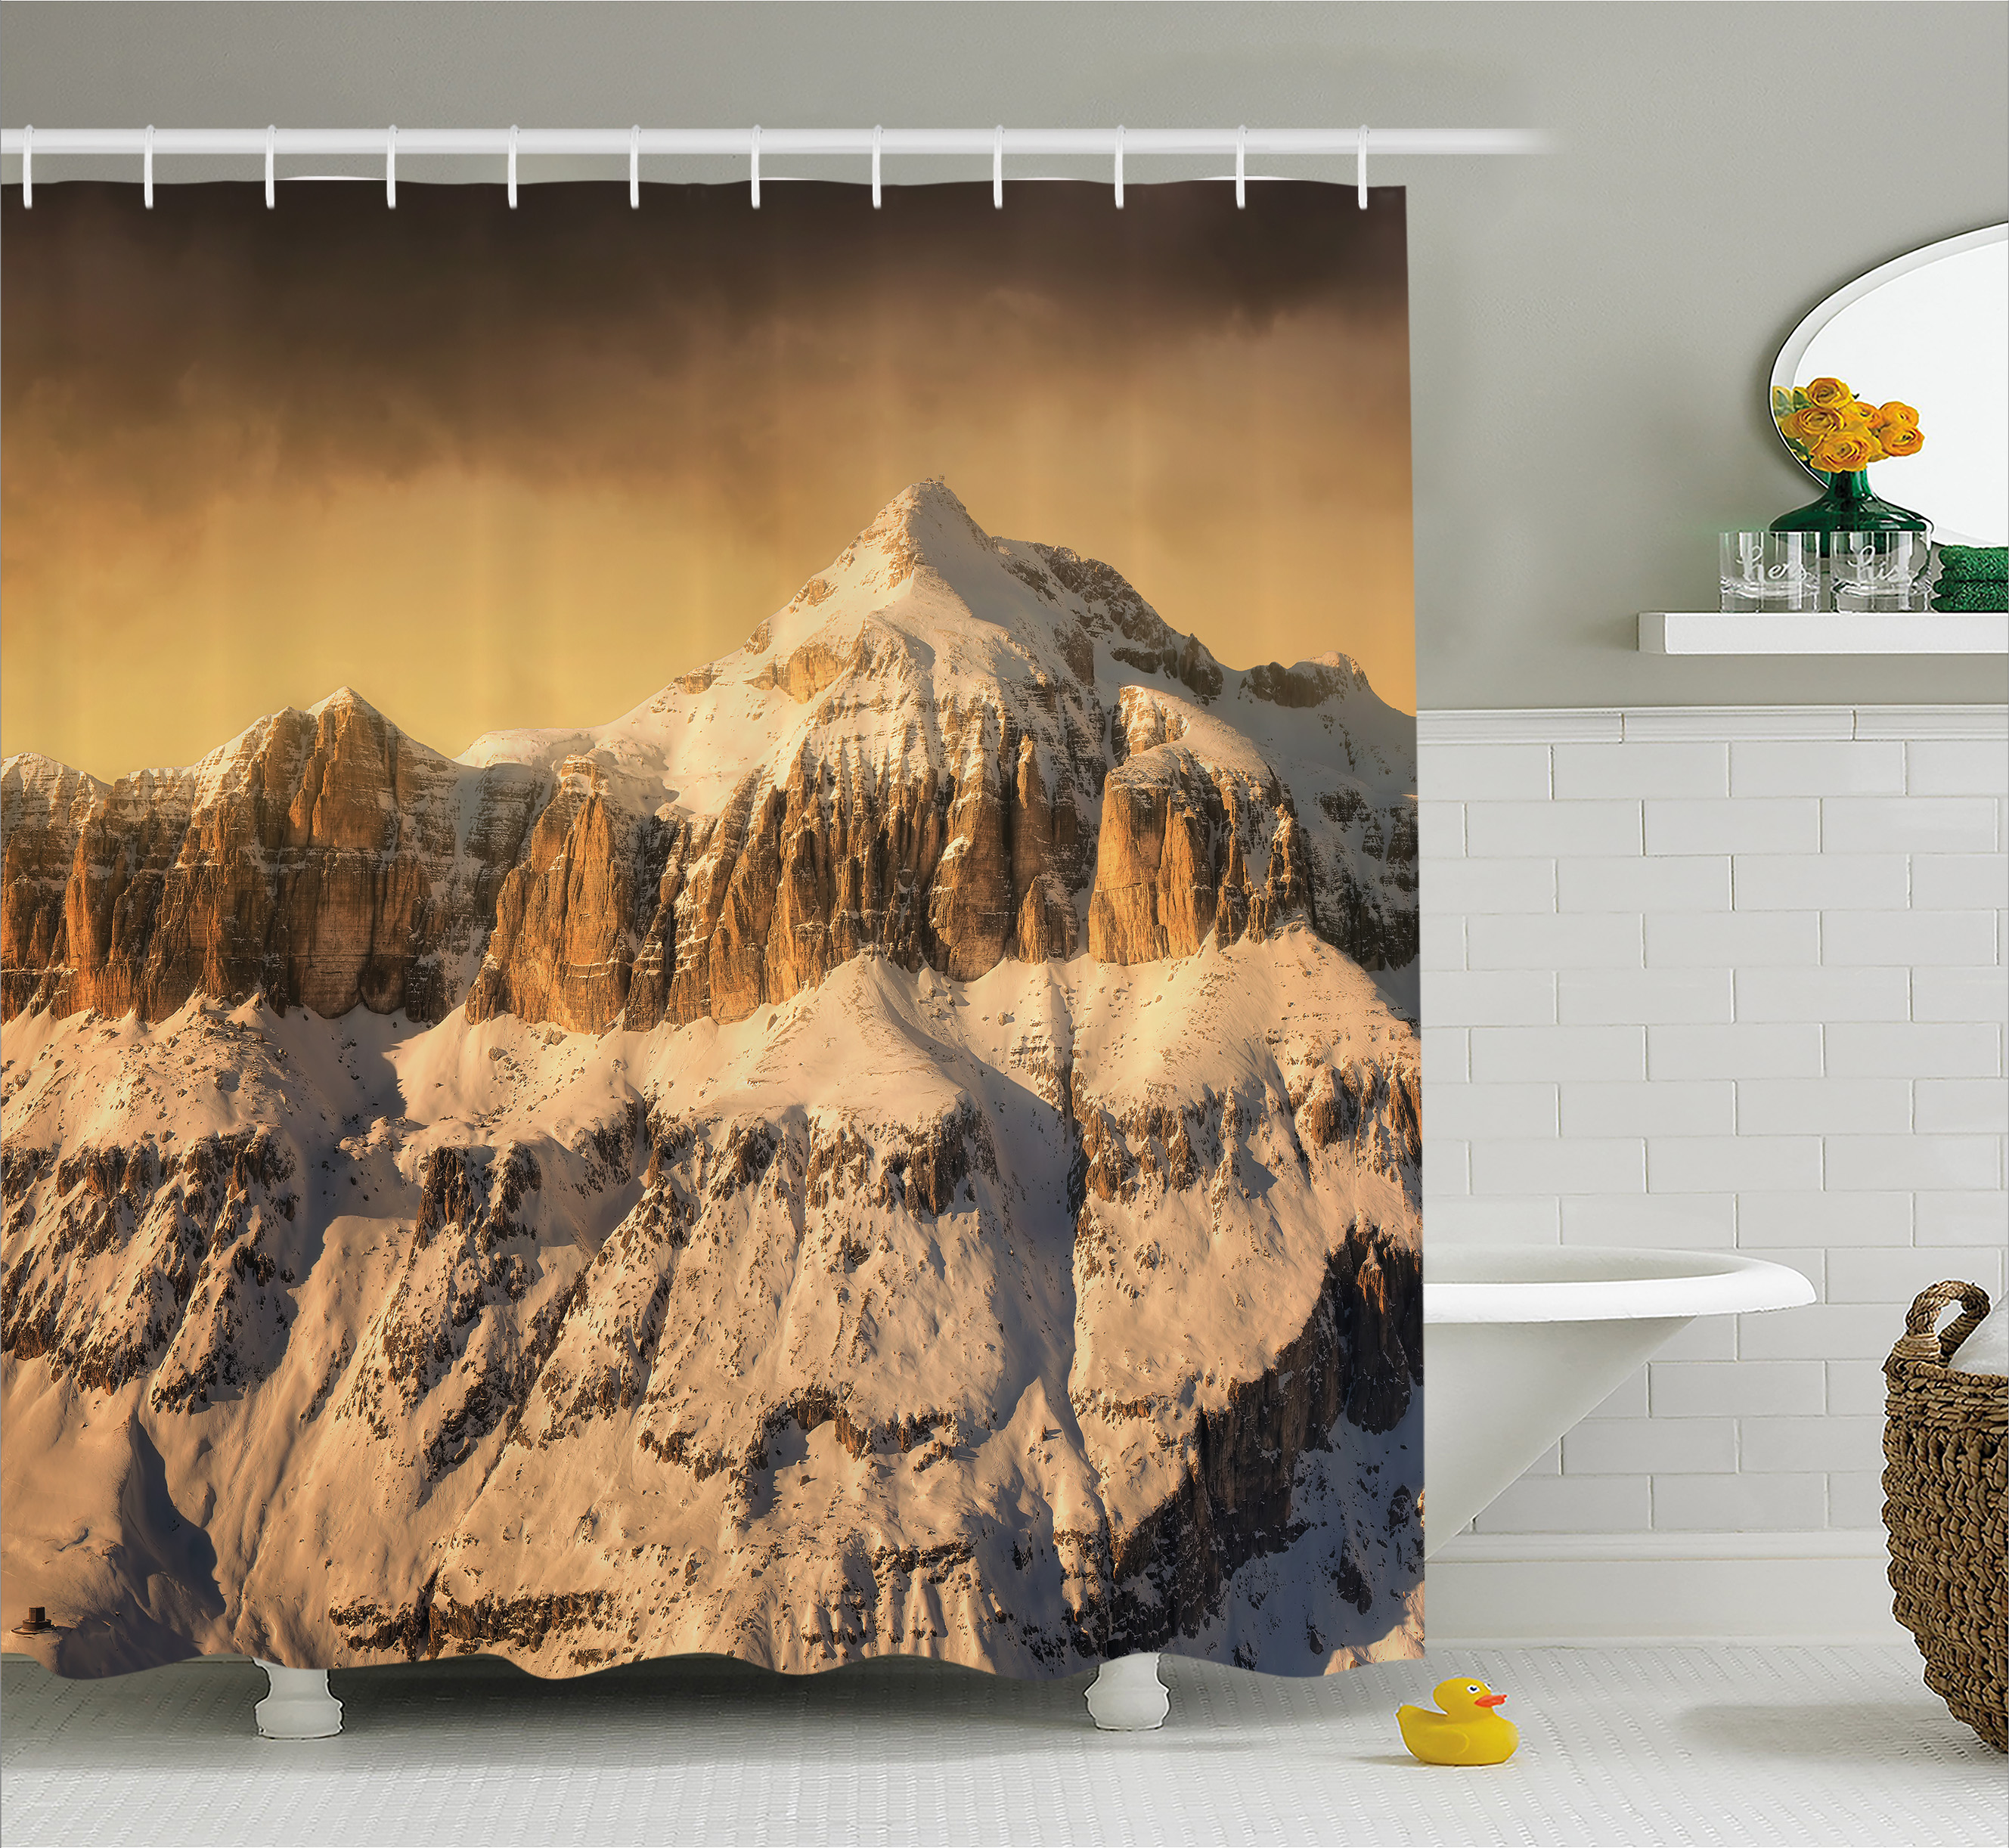 Farmhouse Decor Shower Curtain, Surreal Saturated Photo of Italian Twin Mountain Peaks with Silent Overcast Sky, Fabric Bathroom Set with Hooks, 69W X 70L Inches, Sepia, by Ambesonne